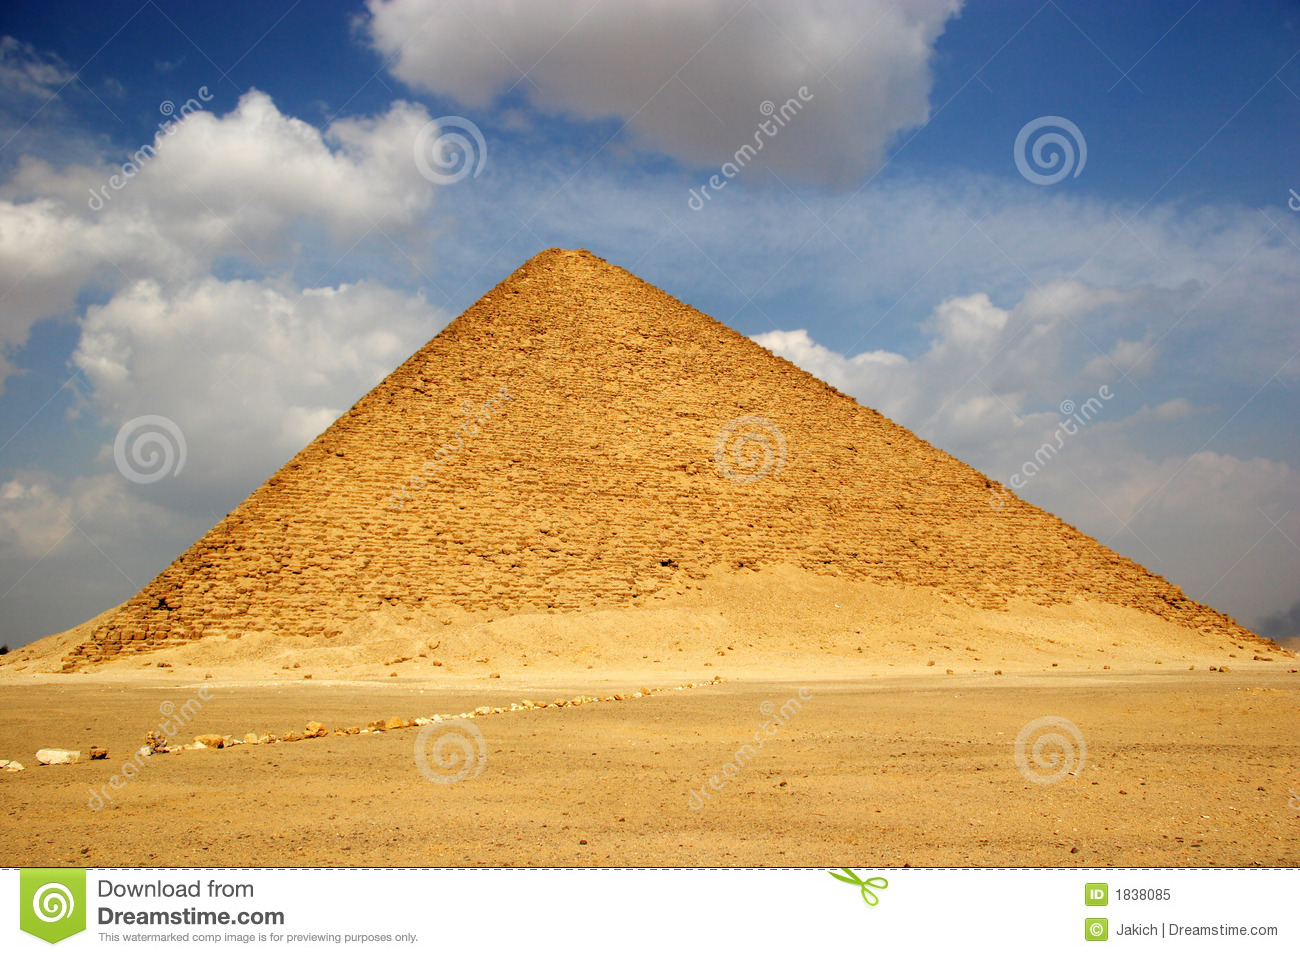 De rode Piramide van Dahshur in Egypte